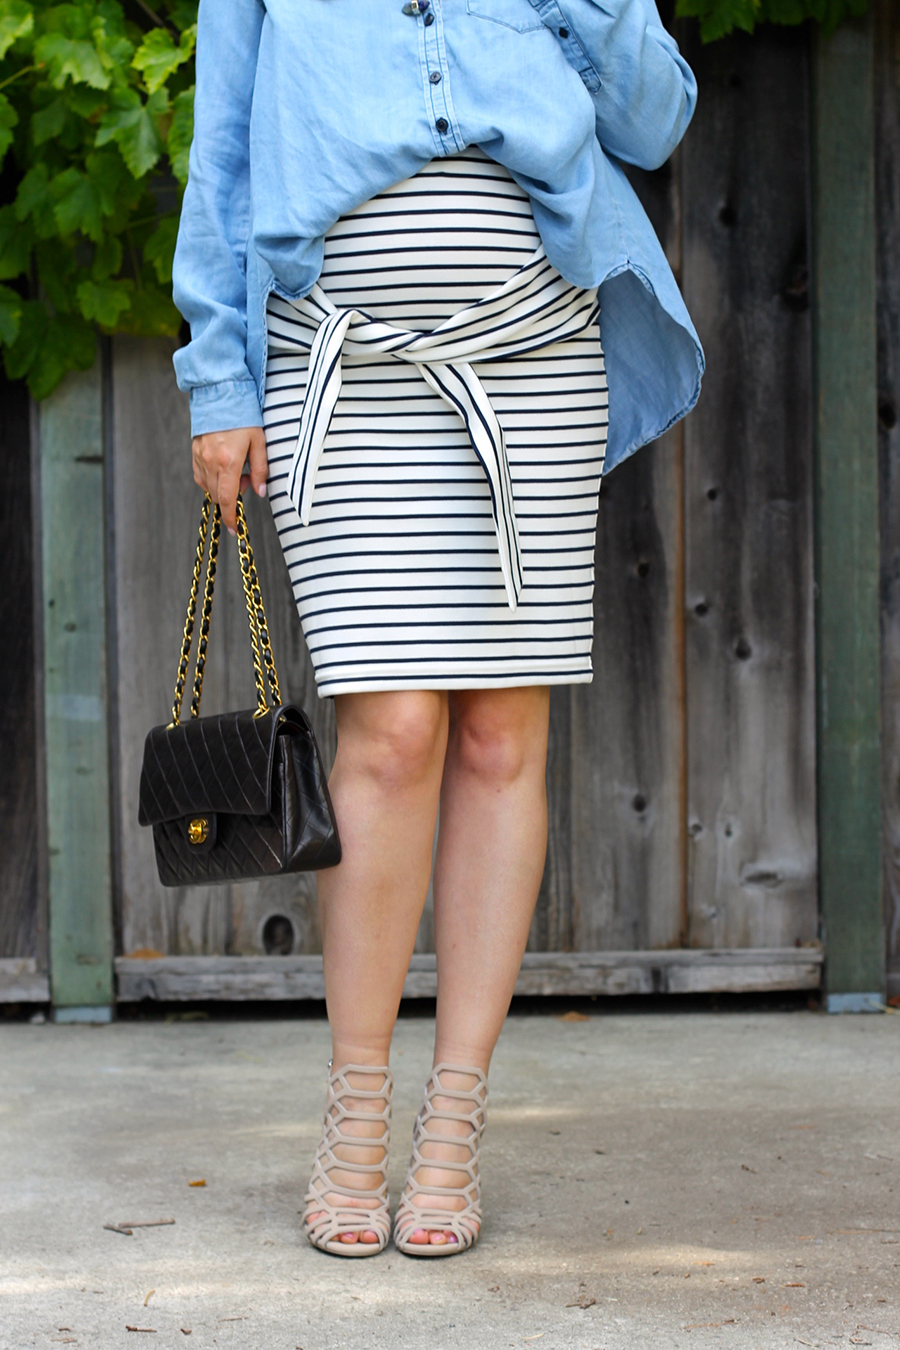 Kingdom & State-Tie Front Skirt-Maternity Style-Pregnancy Style-Chambray Top-Target Style-Have Need Want 9